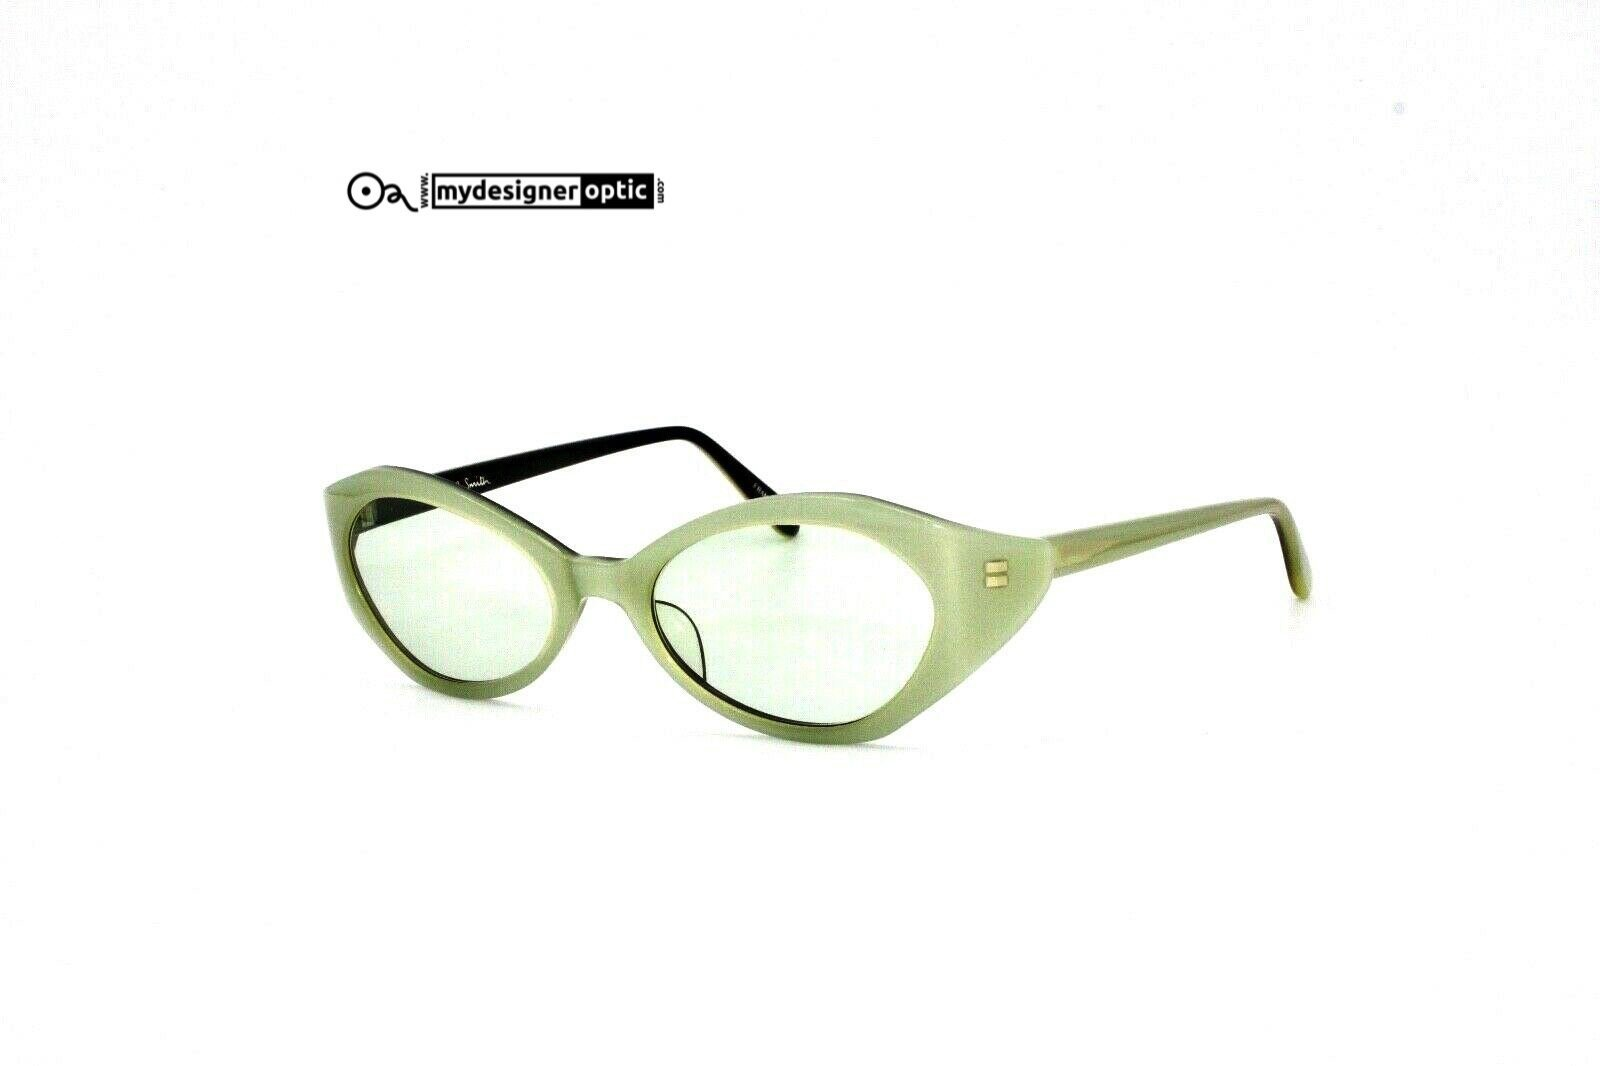 Paul Smith Sunglasses PS-213 SF Limited edition Made in Japan - Mydesigneroptic